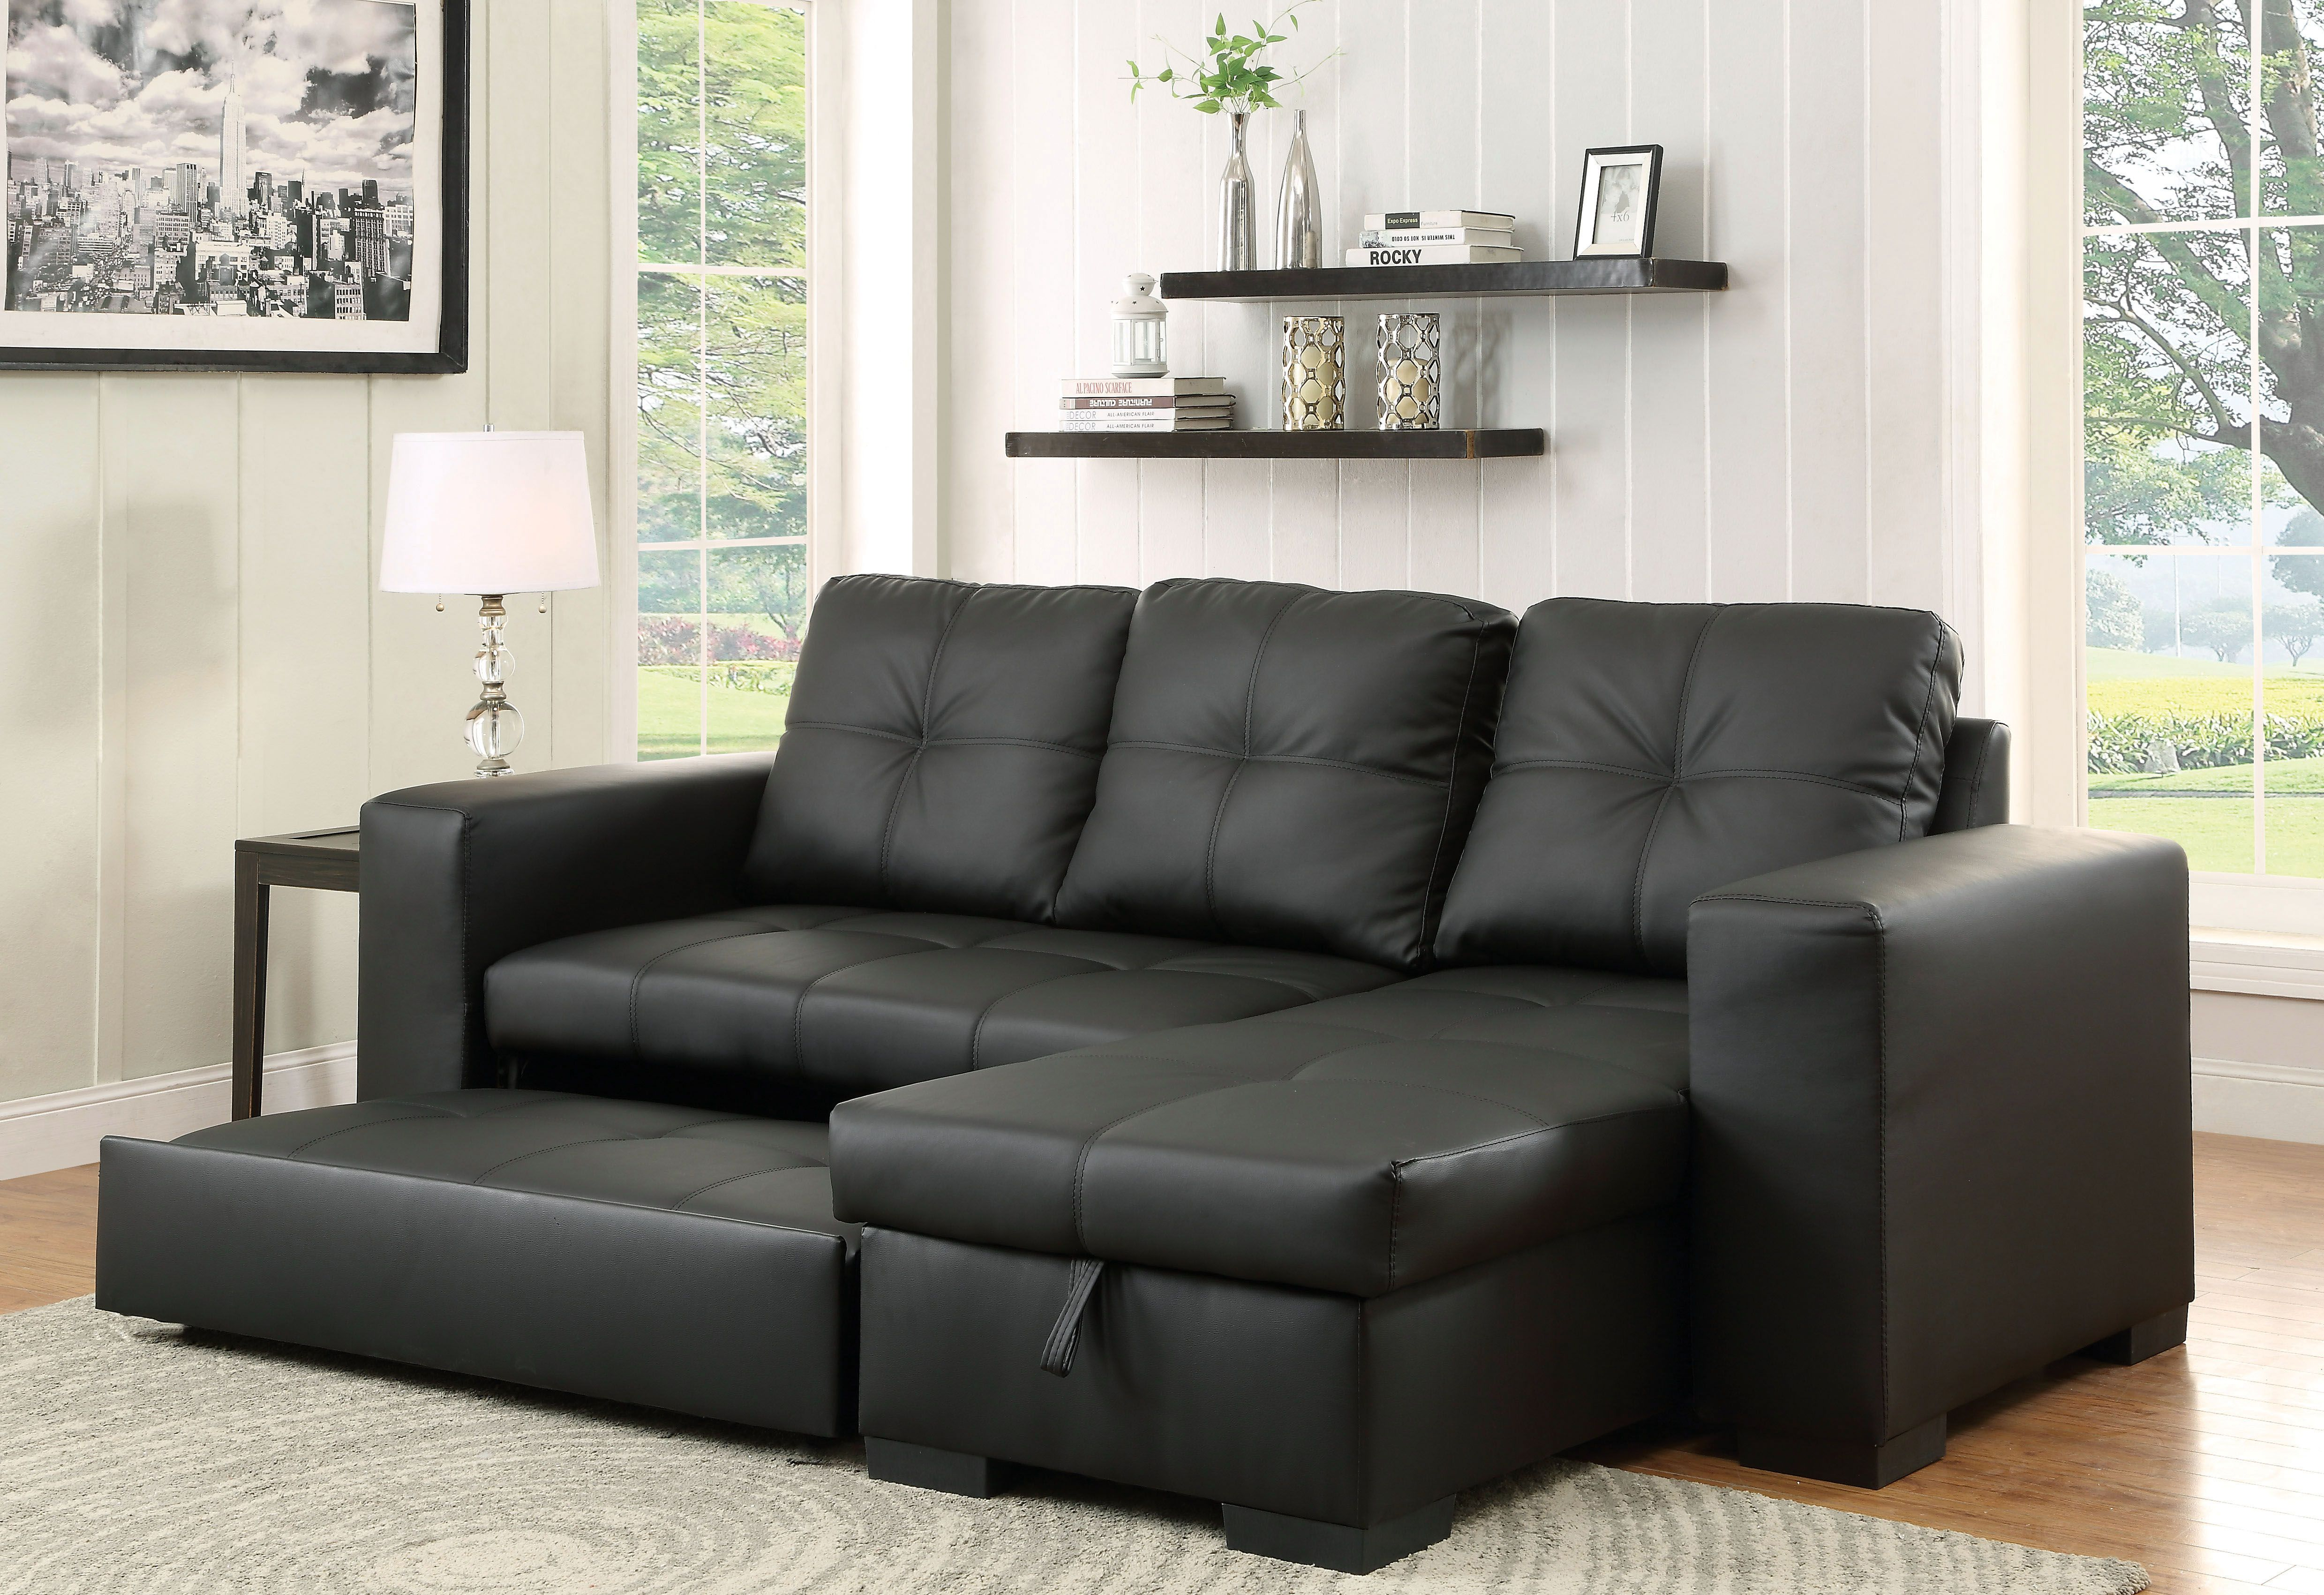 Furniture Of America Denton Bonded Leather Sectional With Images Sectional Sofa Couch Furniture Of America